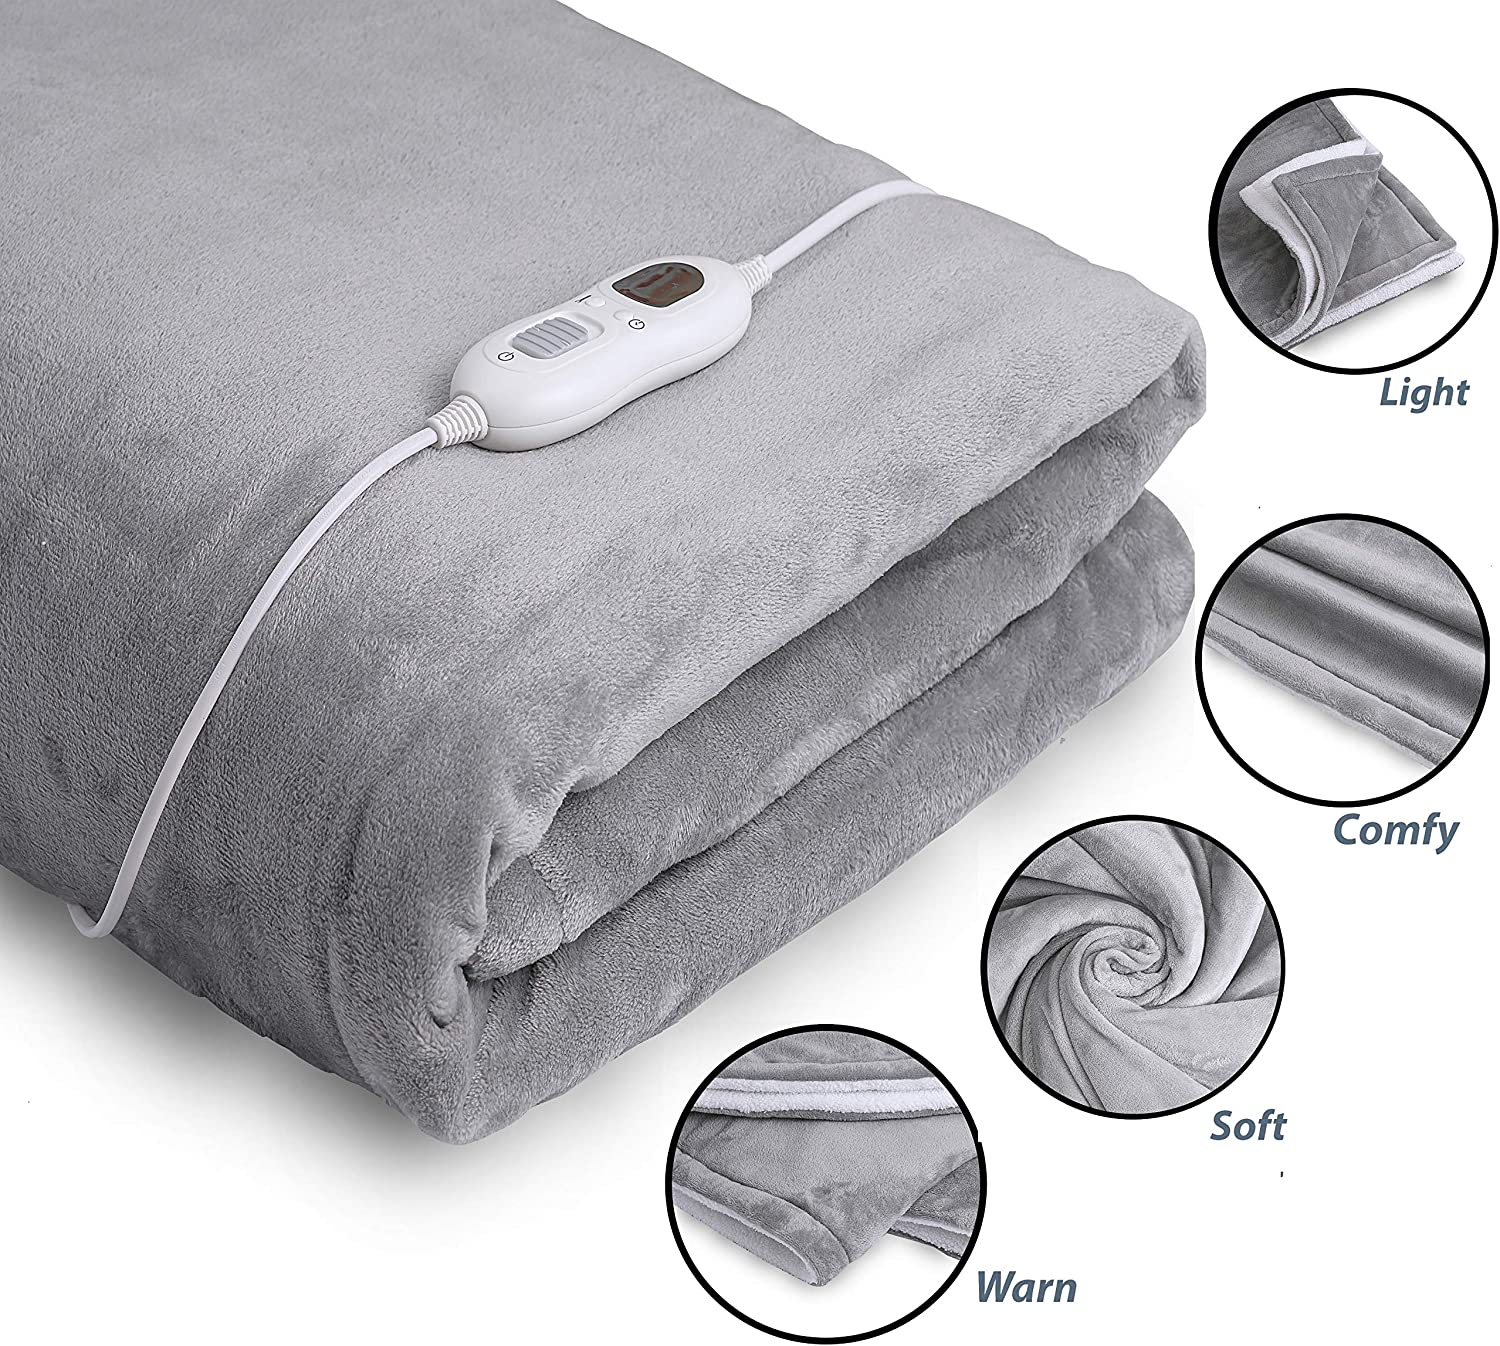 "InvoSpa Electric Throw Heated Blanket - 50"" x 60"" Flannel & Sherpa Fast Heating Blanket, with 3 Heating Levels, 8 Hours Auto Off - Electric Blanket, Heated Mattress Pad - Machine Washable"